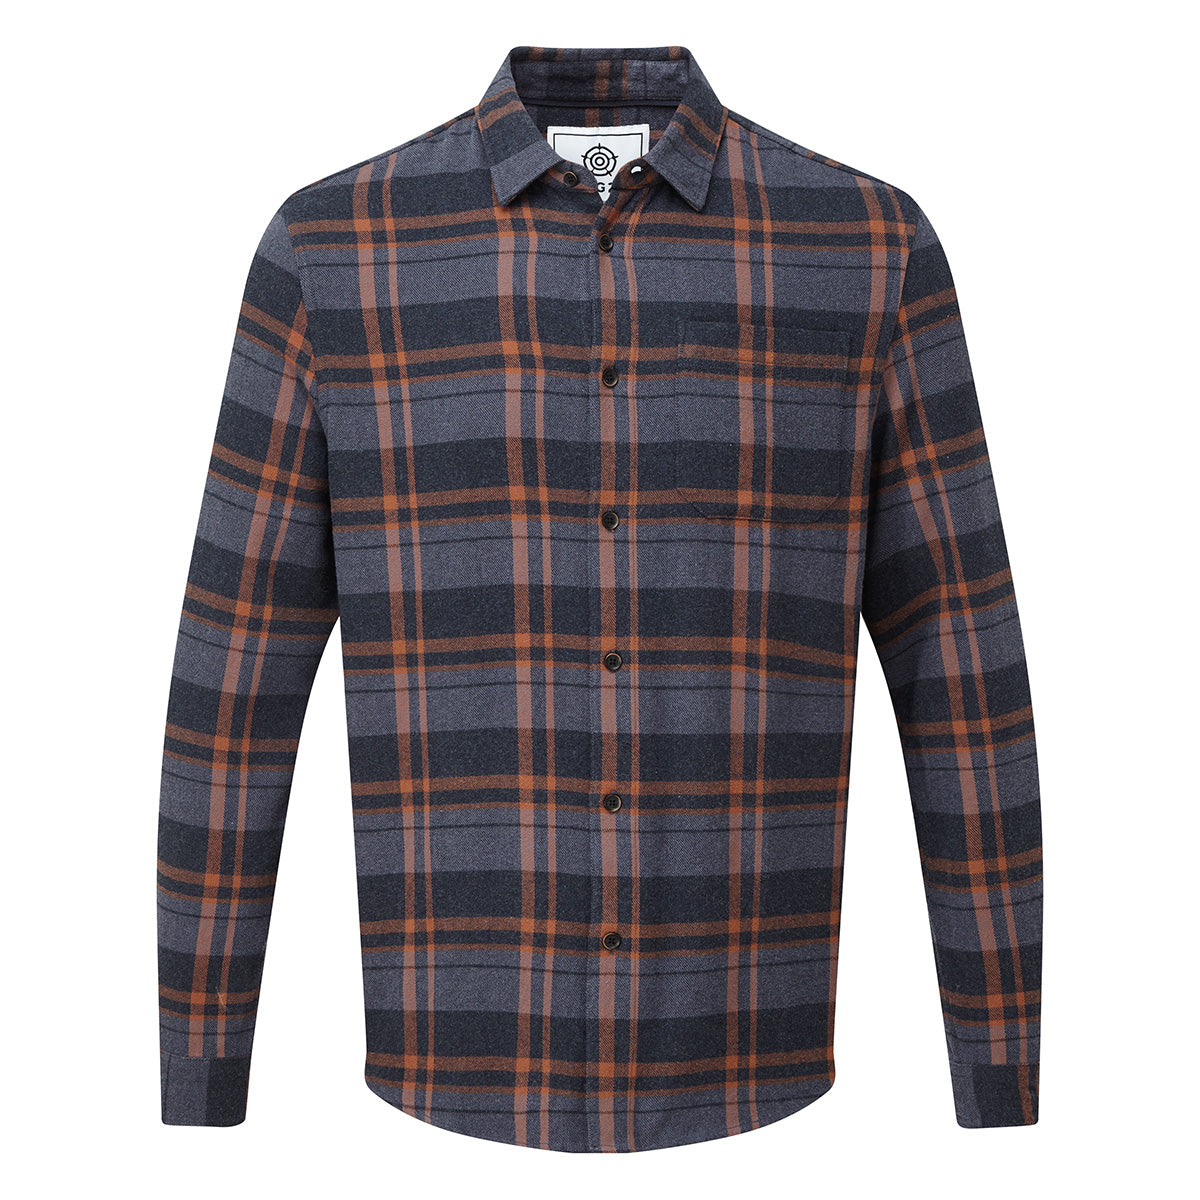 Louis Mens Long Sleeve Flannel Check Shirt - Amber Check image 4